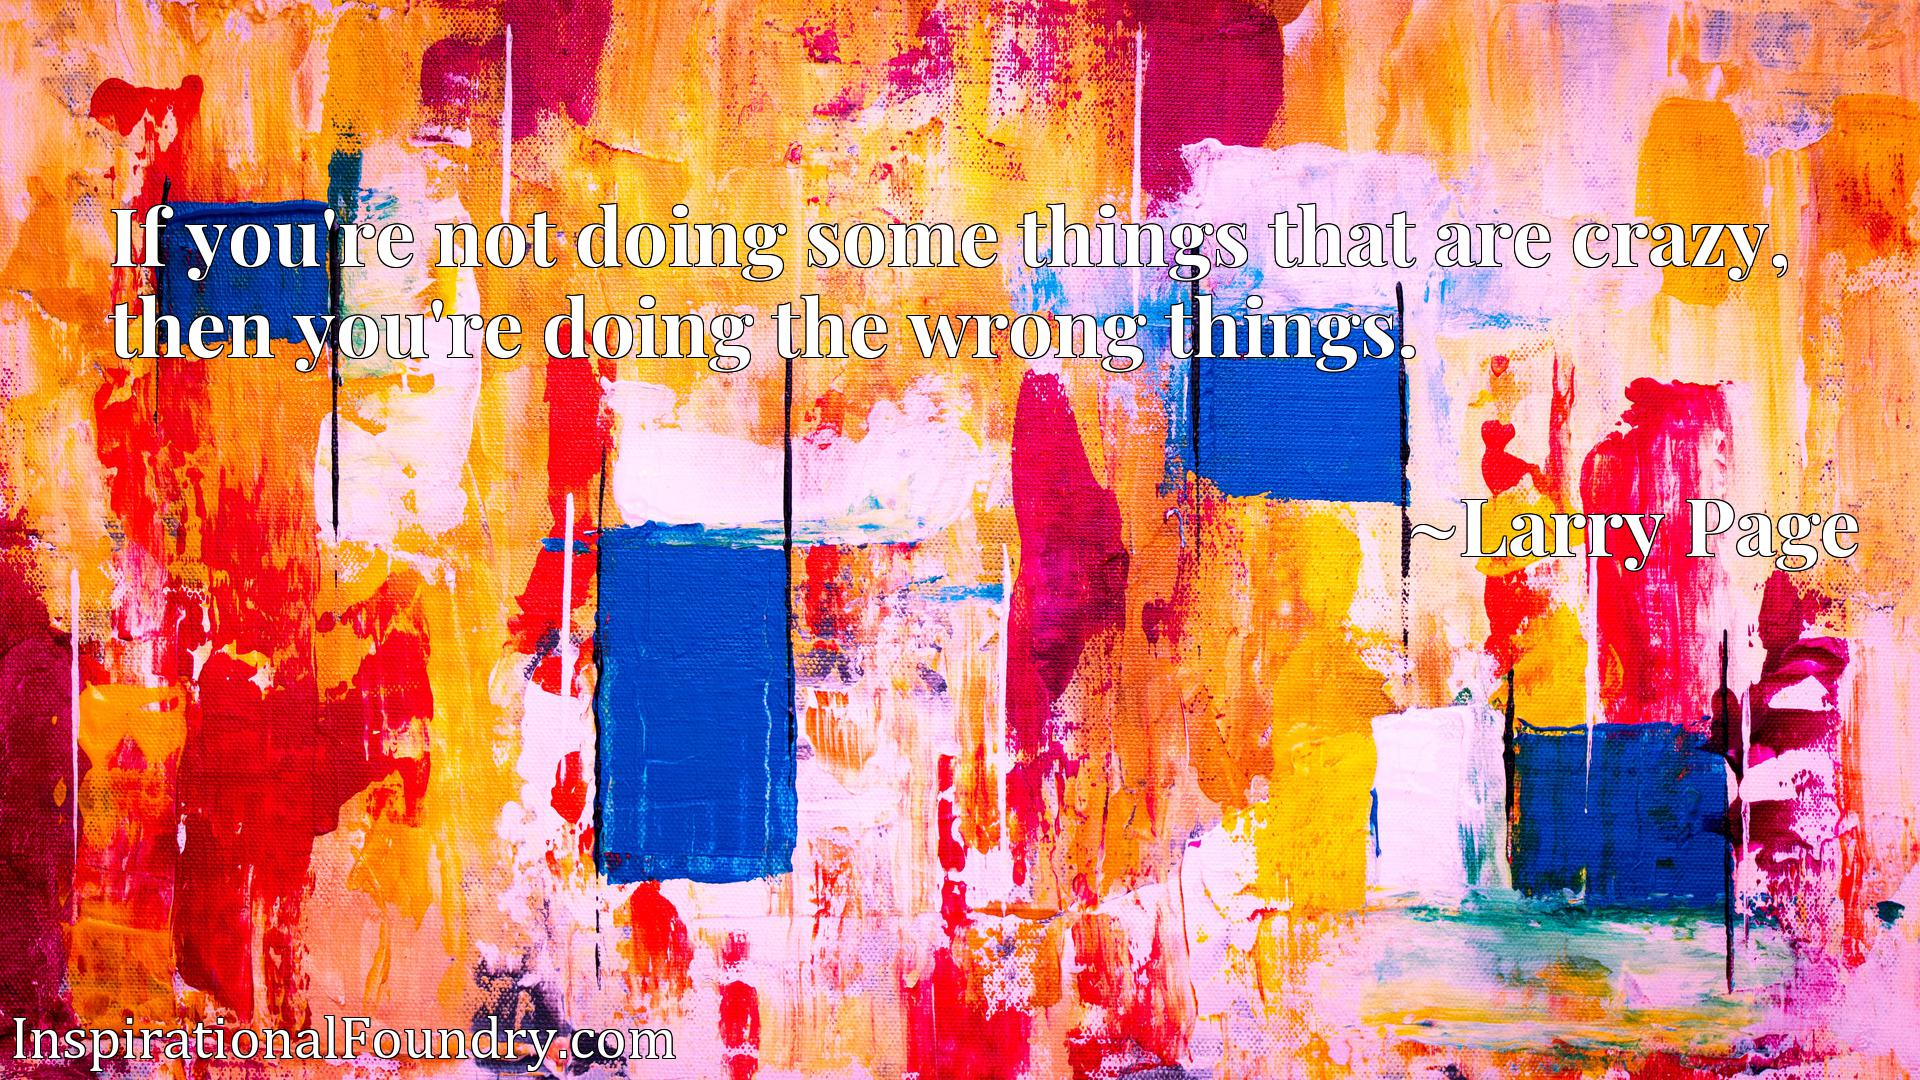 If you're not doing some things that are crazy, then you're doing the wrong things.